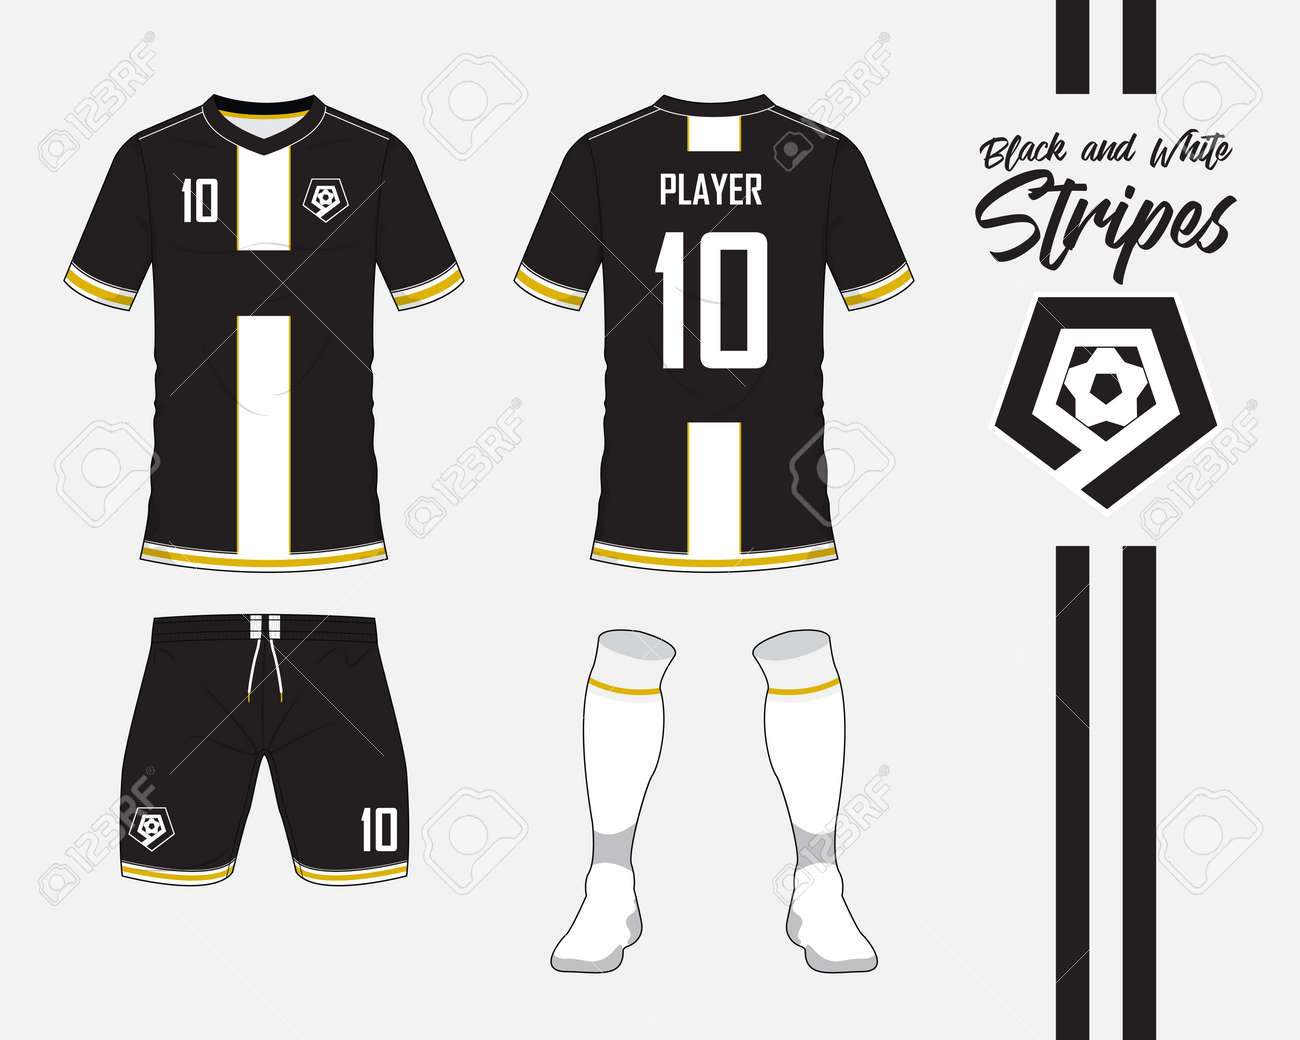 026a8f8f0 Soccer jersey or football kit collection in black and white stripes  concept. Football shirt mock